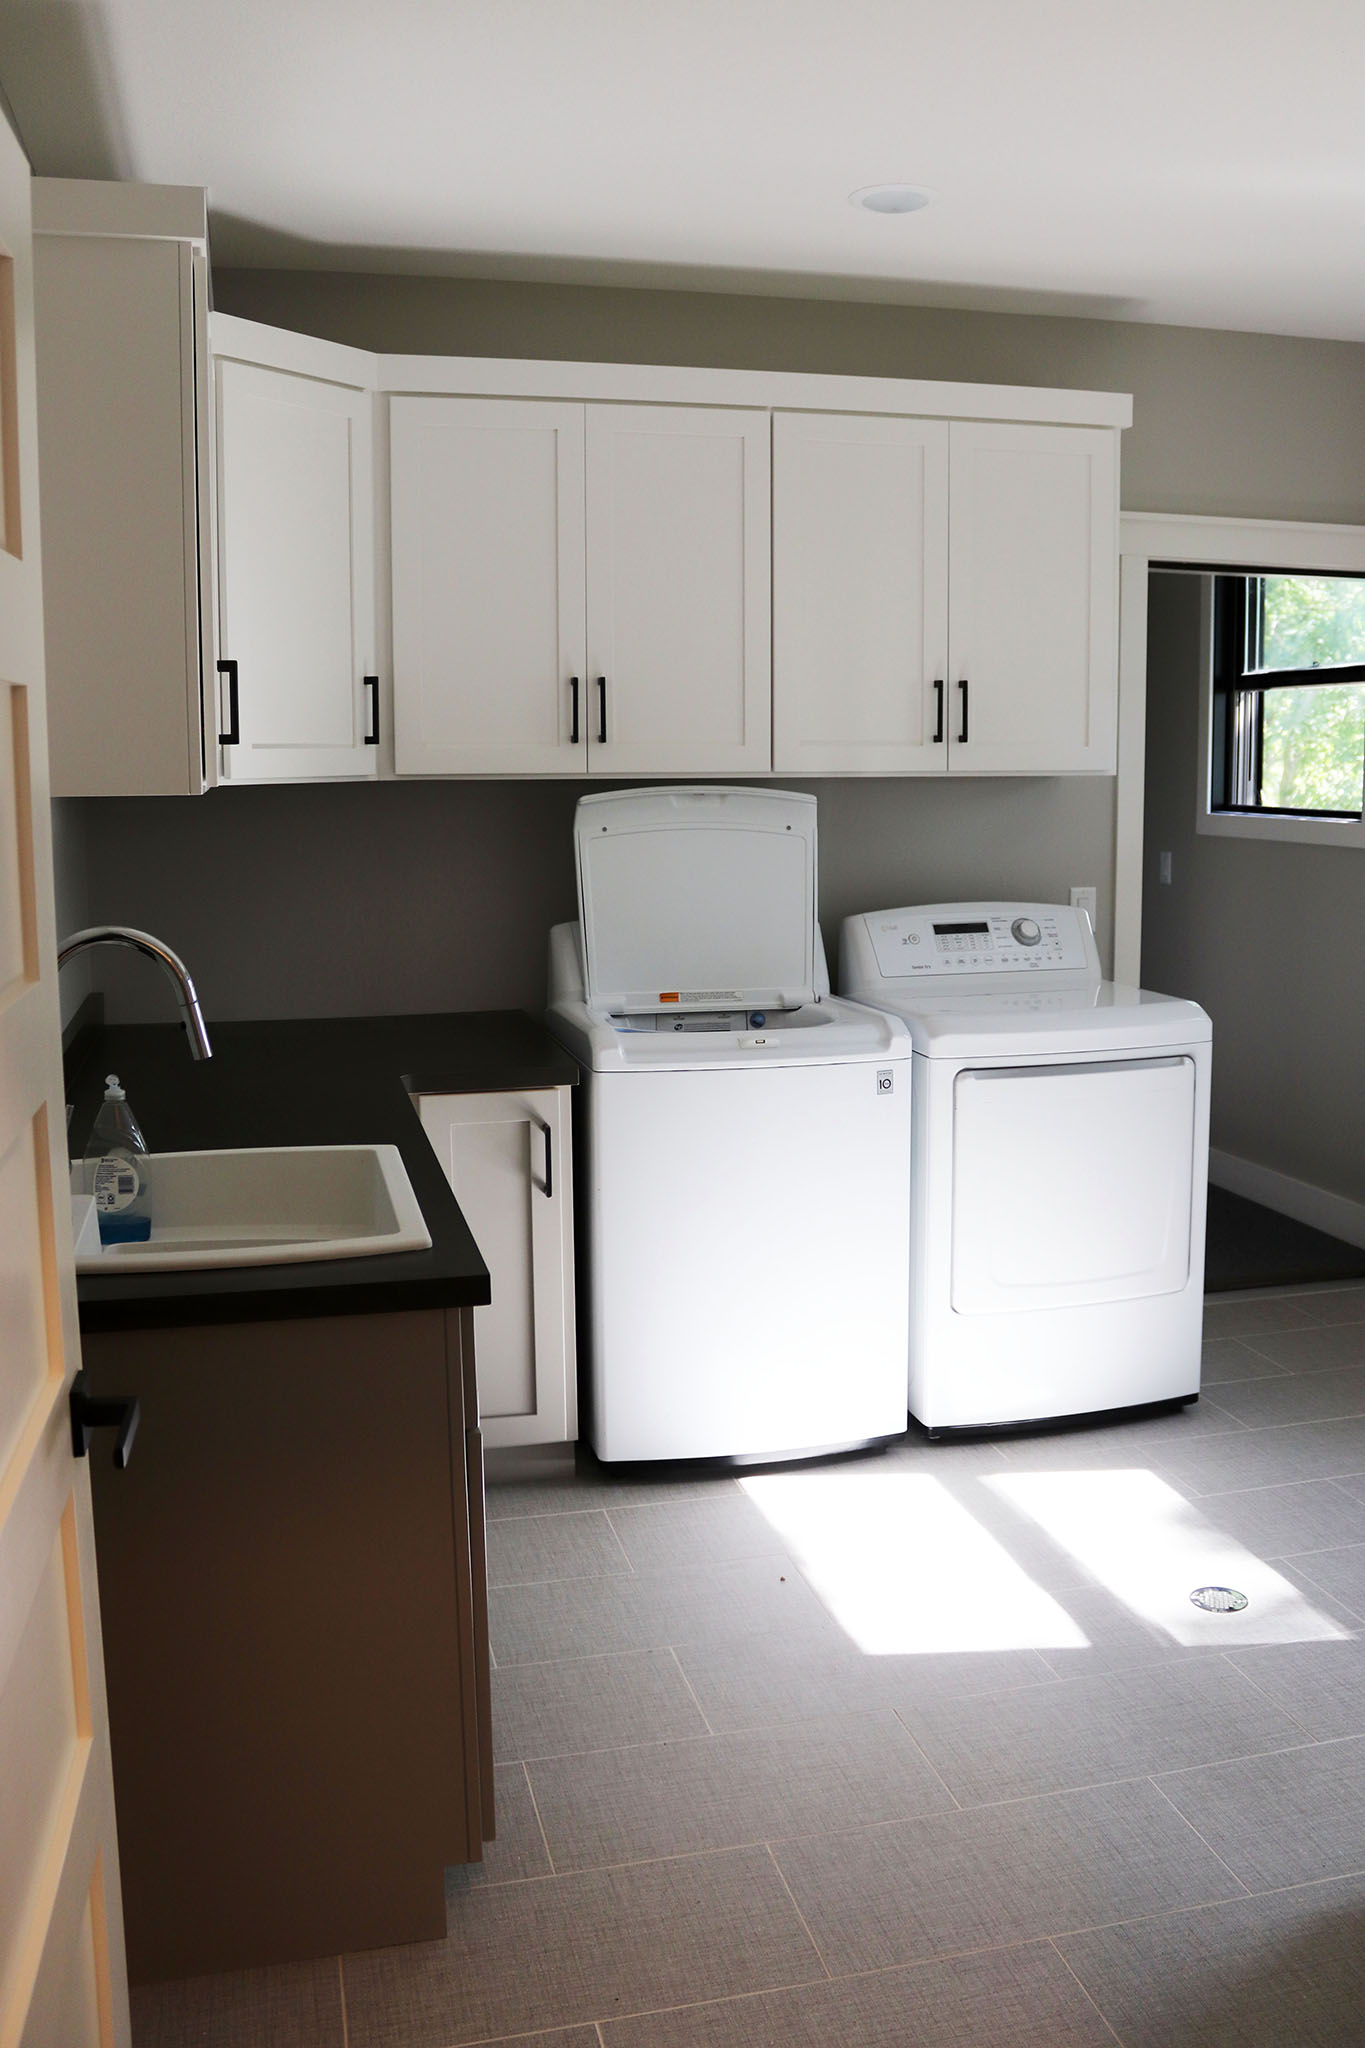 Spacious utility area with laundry, custom cabinets and built-in laundry tub sink